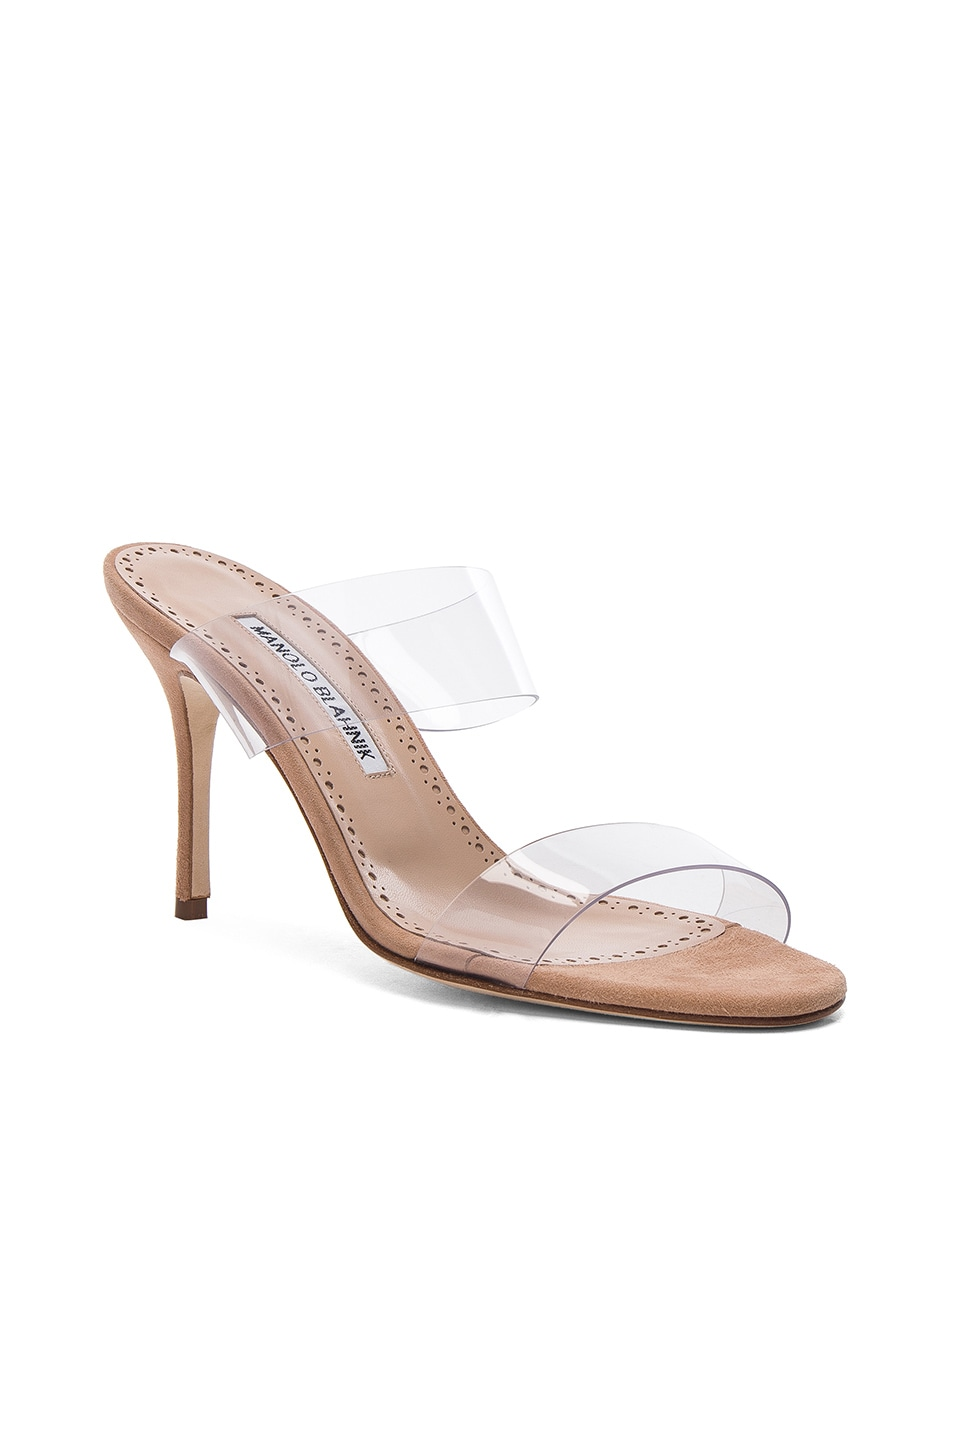 Image 2 of Manolo Blahnik PVC Scolto Sandals in Nude Suede